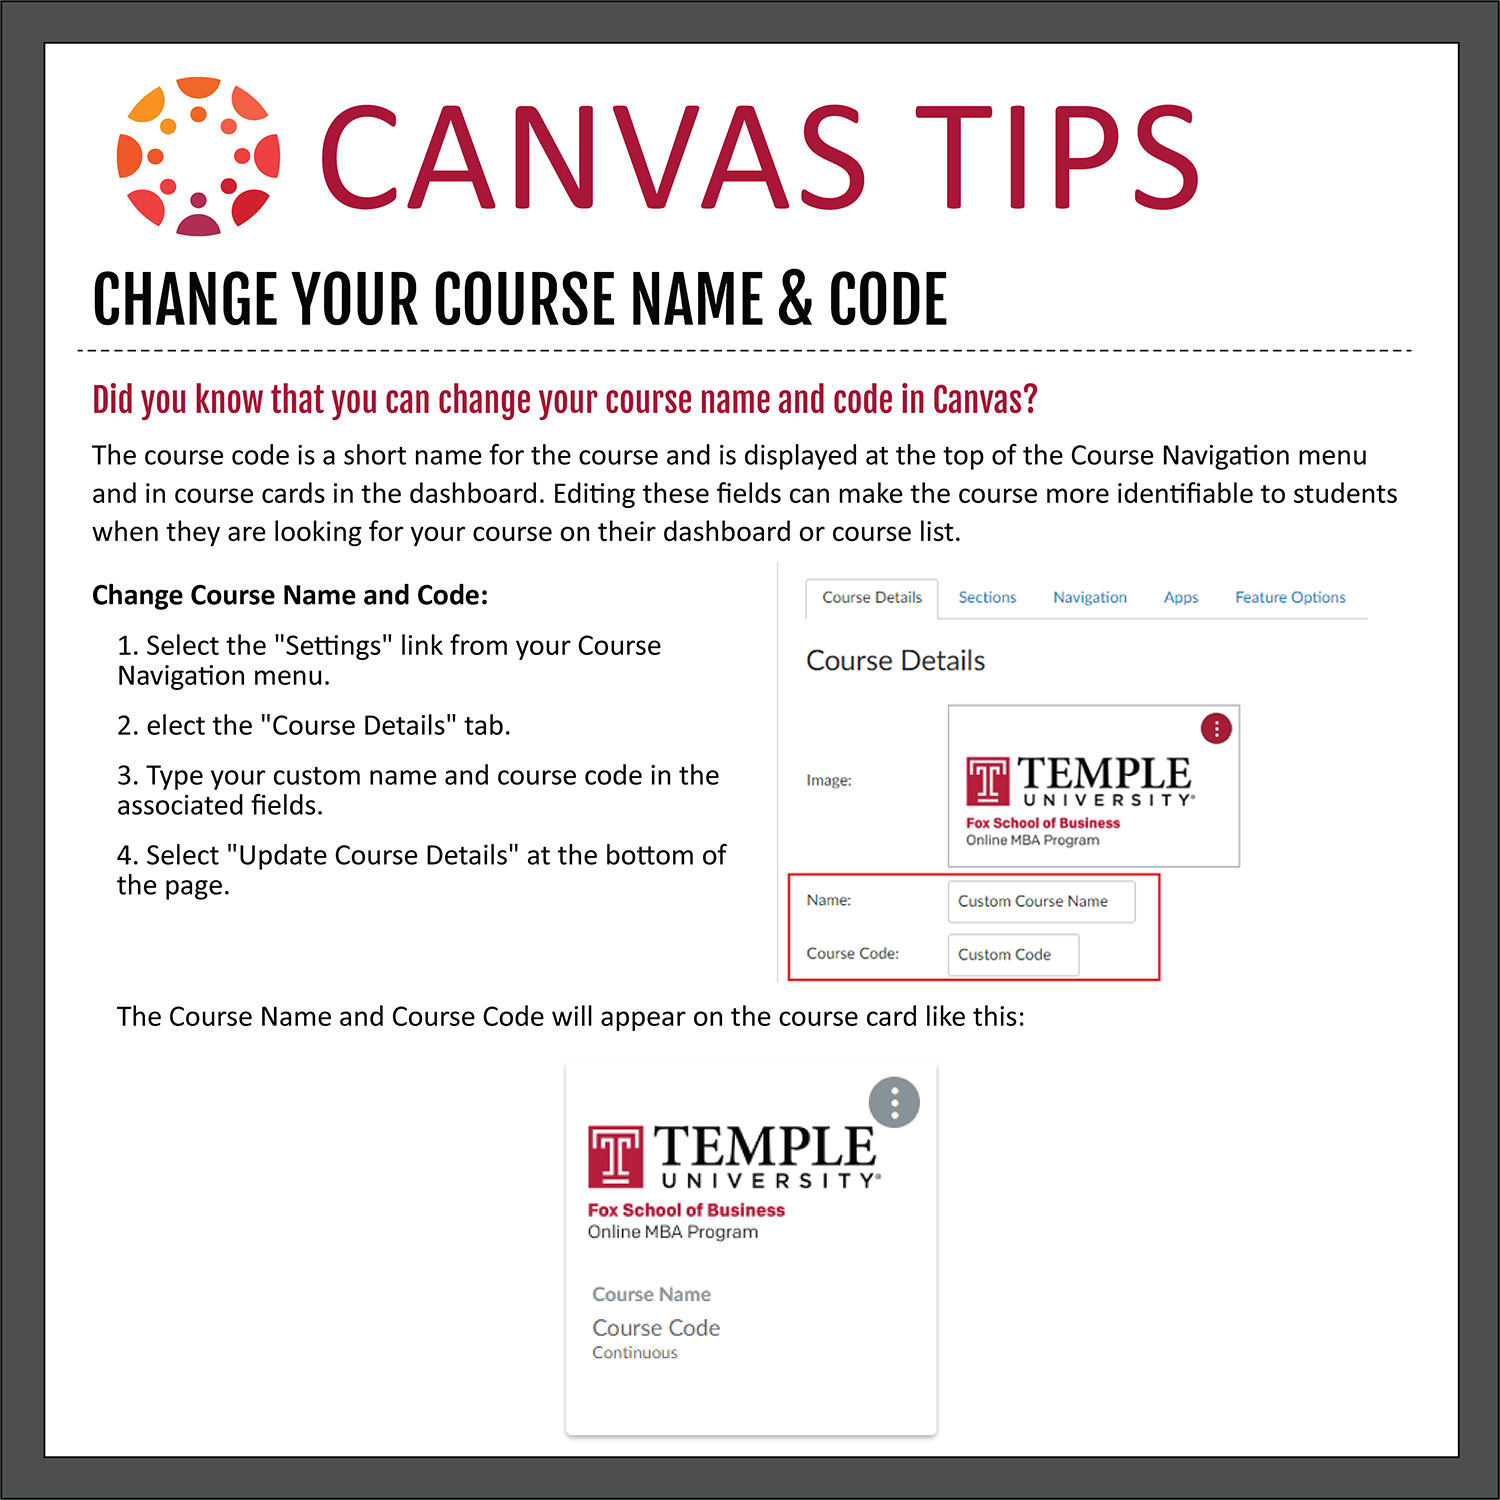 Tip 37: Change Your Course Name & Code